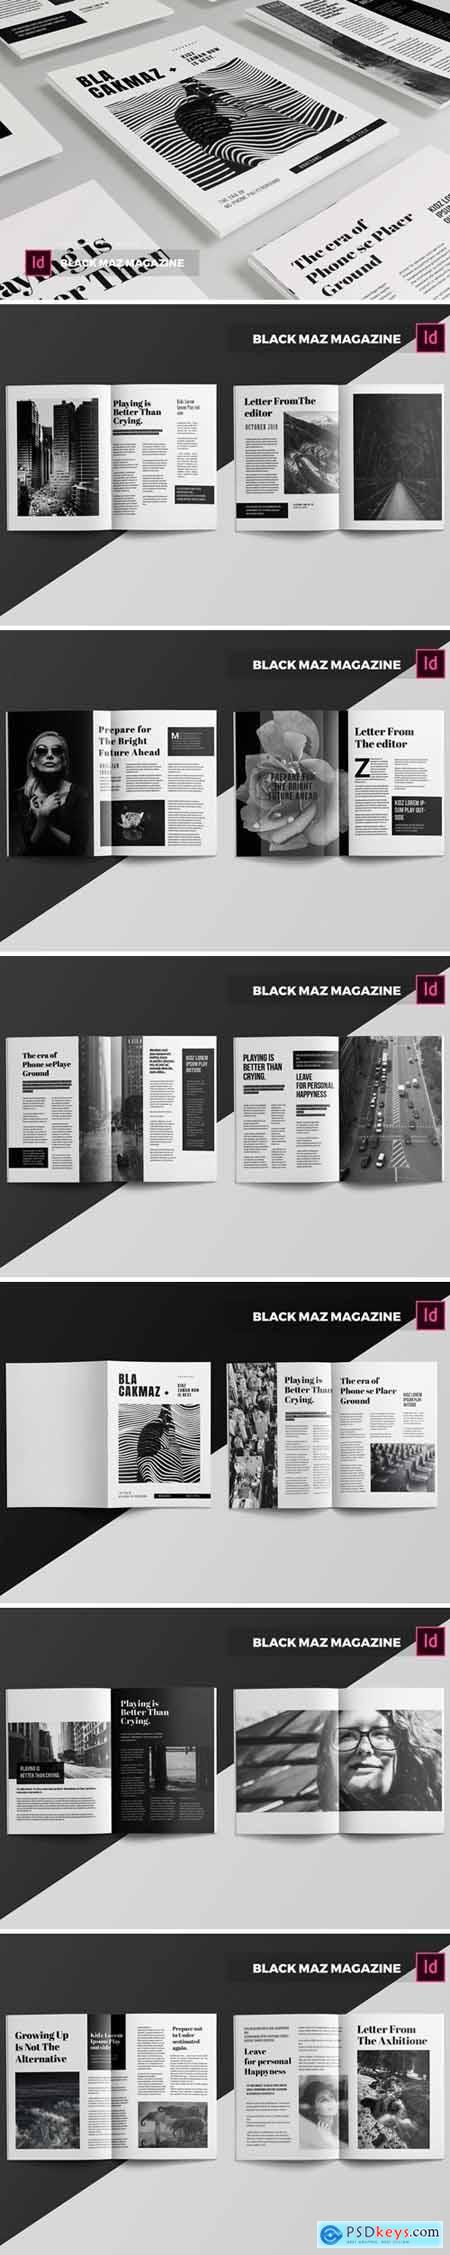 Black Maz Magazine Template